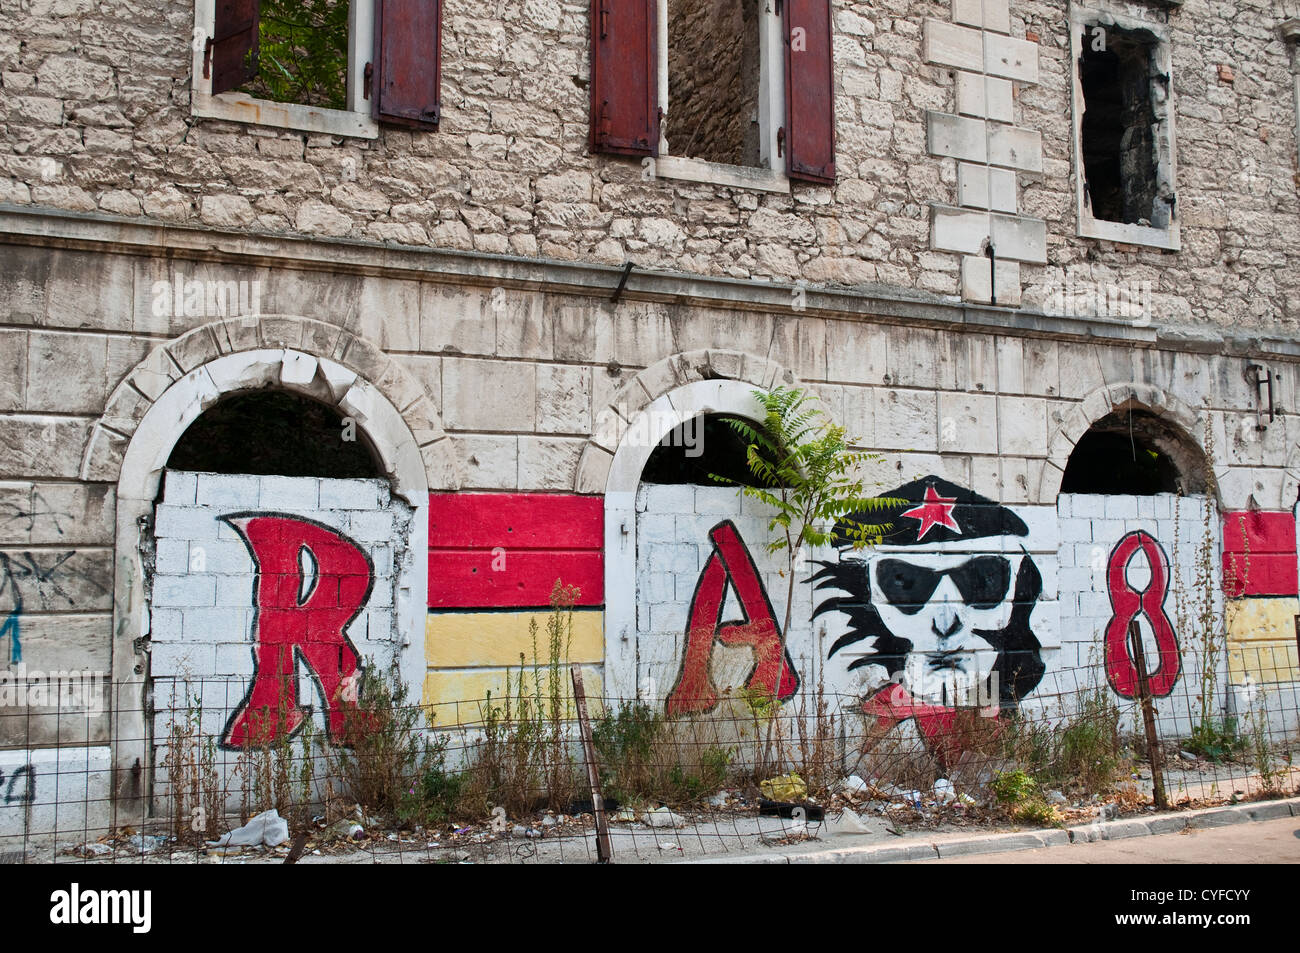 Building destroyed in the war 20 years on, covered with graffiti, Mostar, Bosnia and Herzegovina - Stock Image